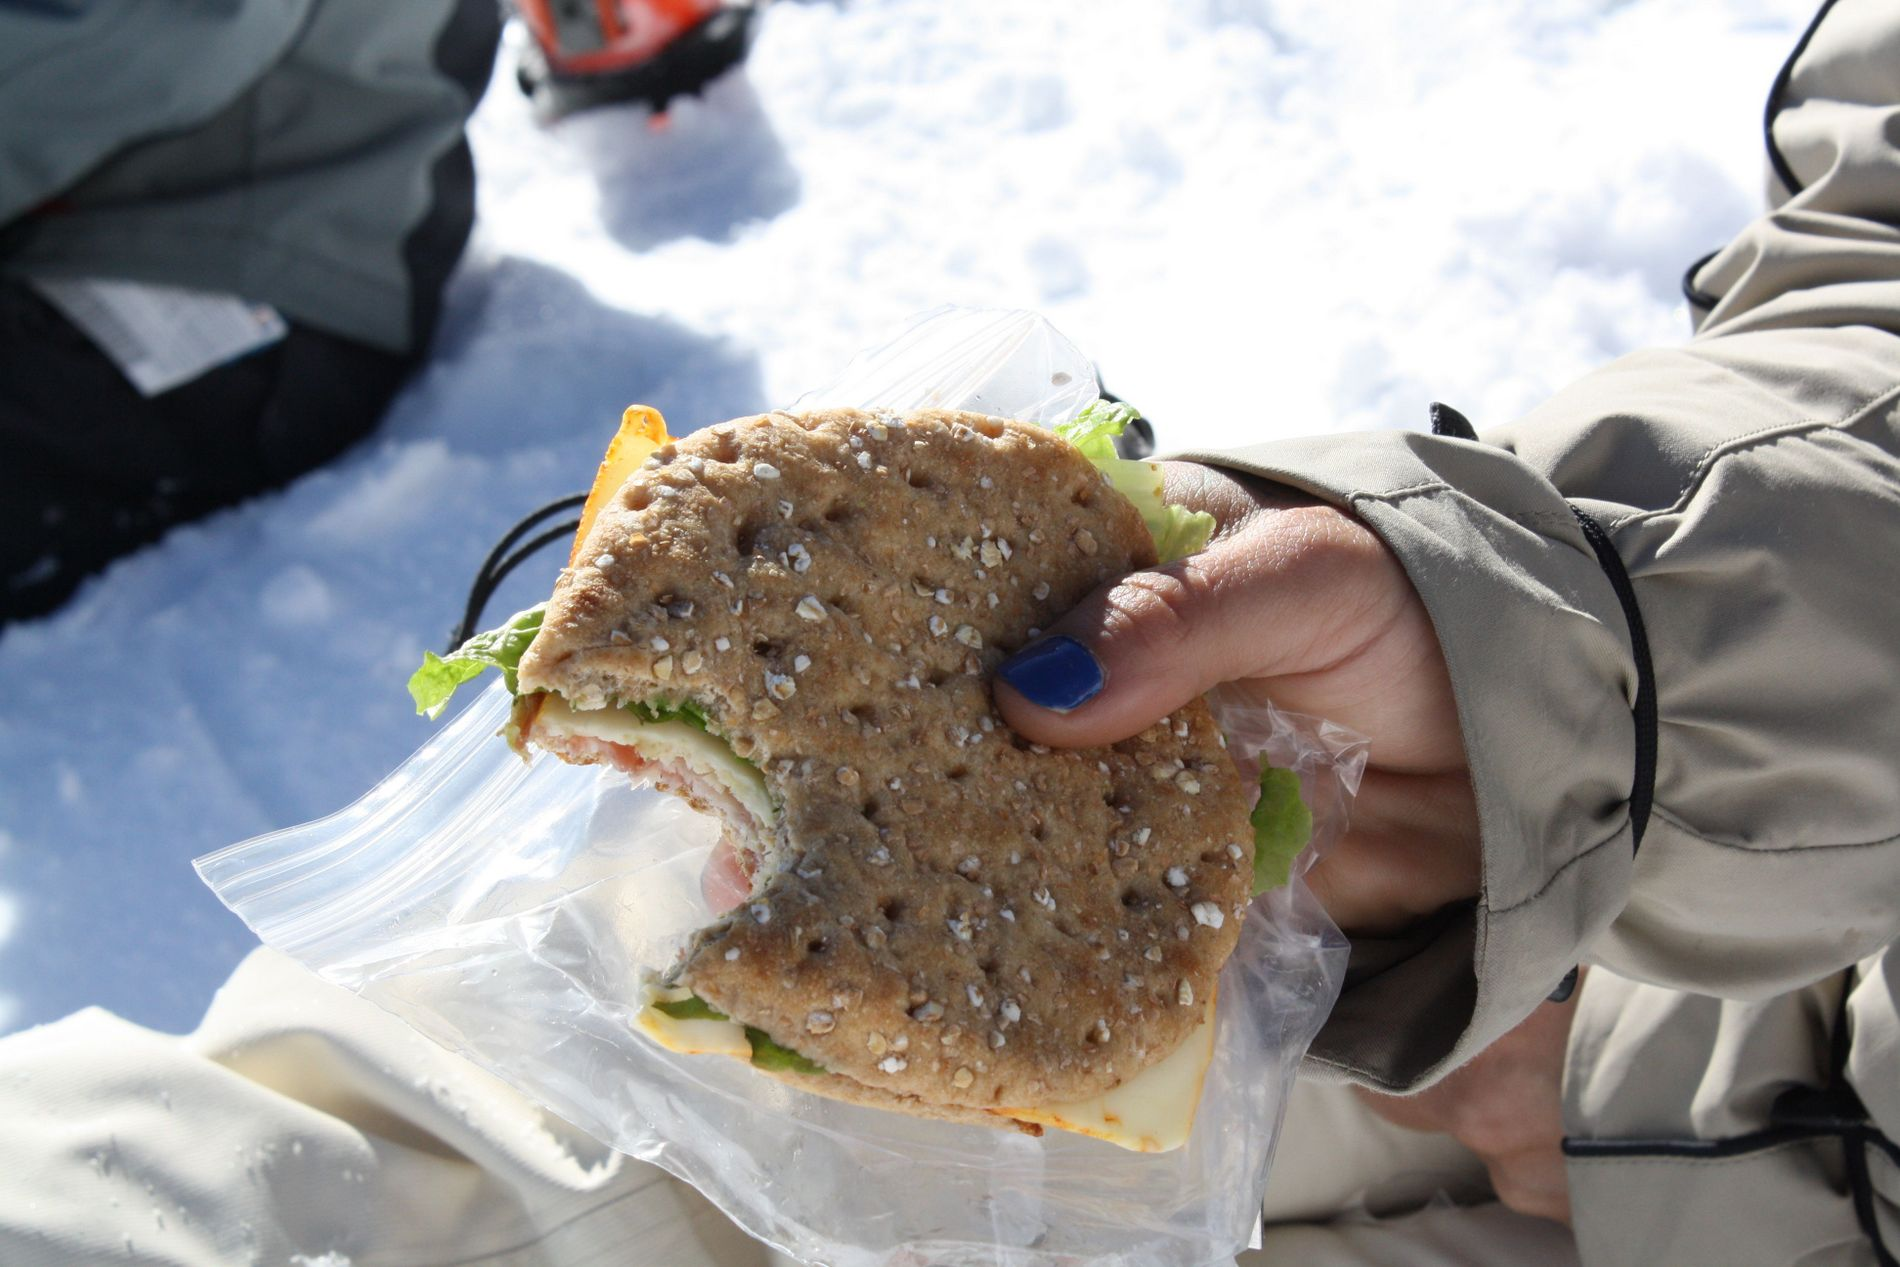 The Snow Junkies lunch